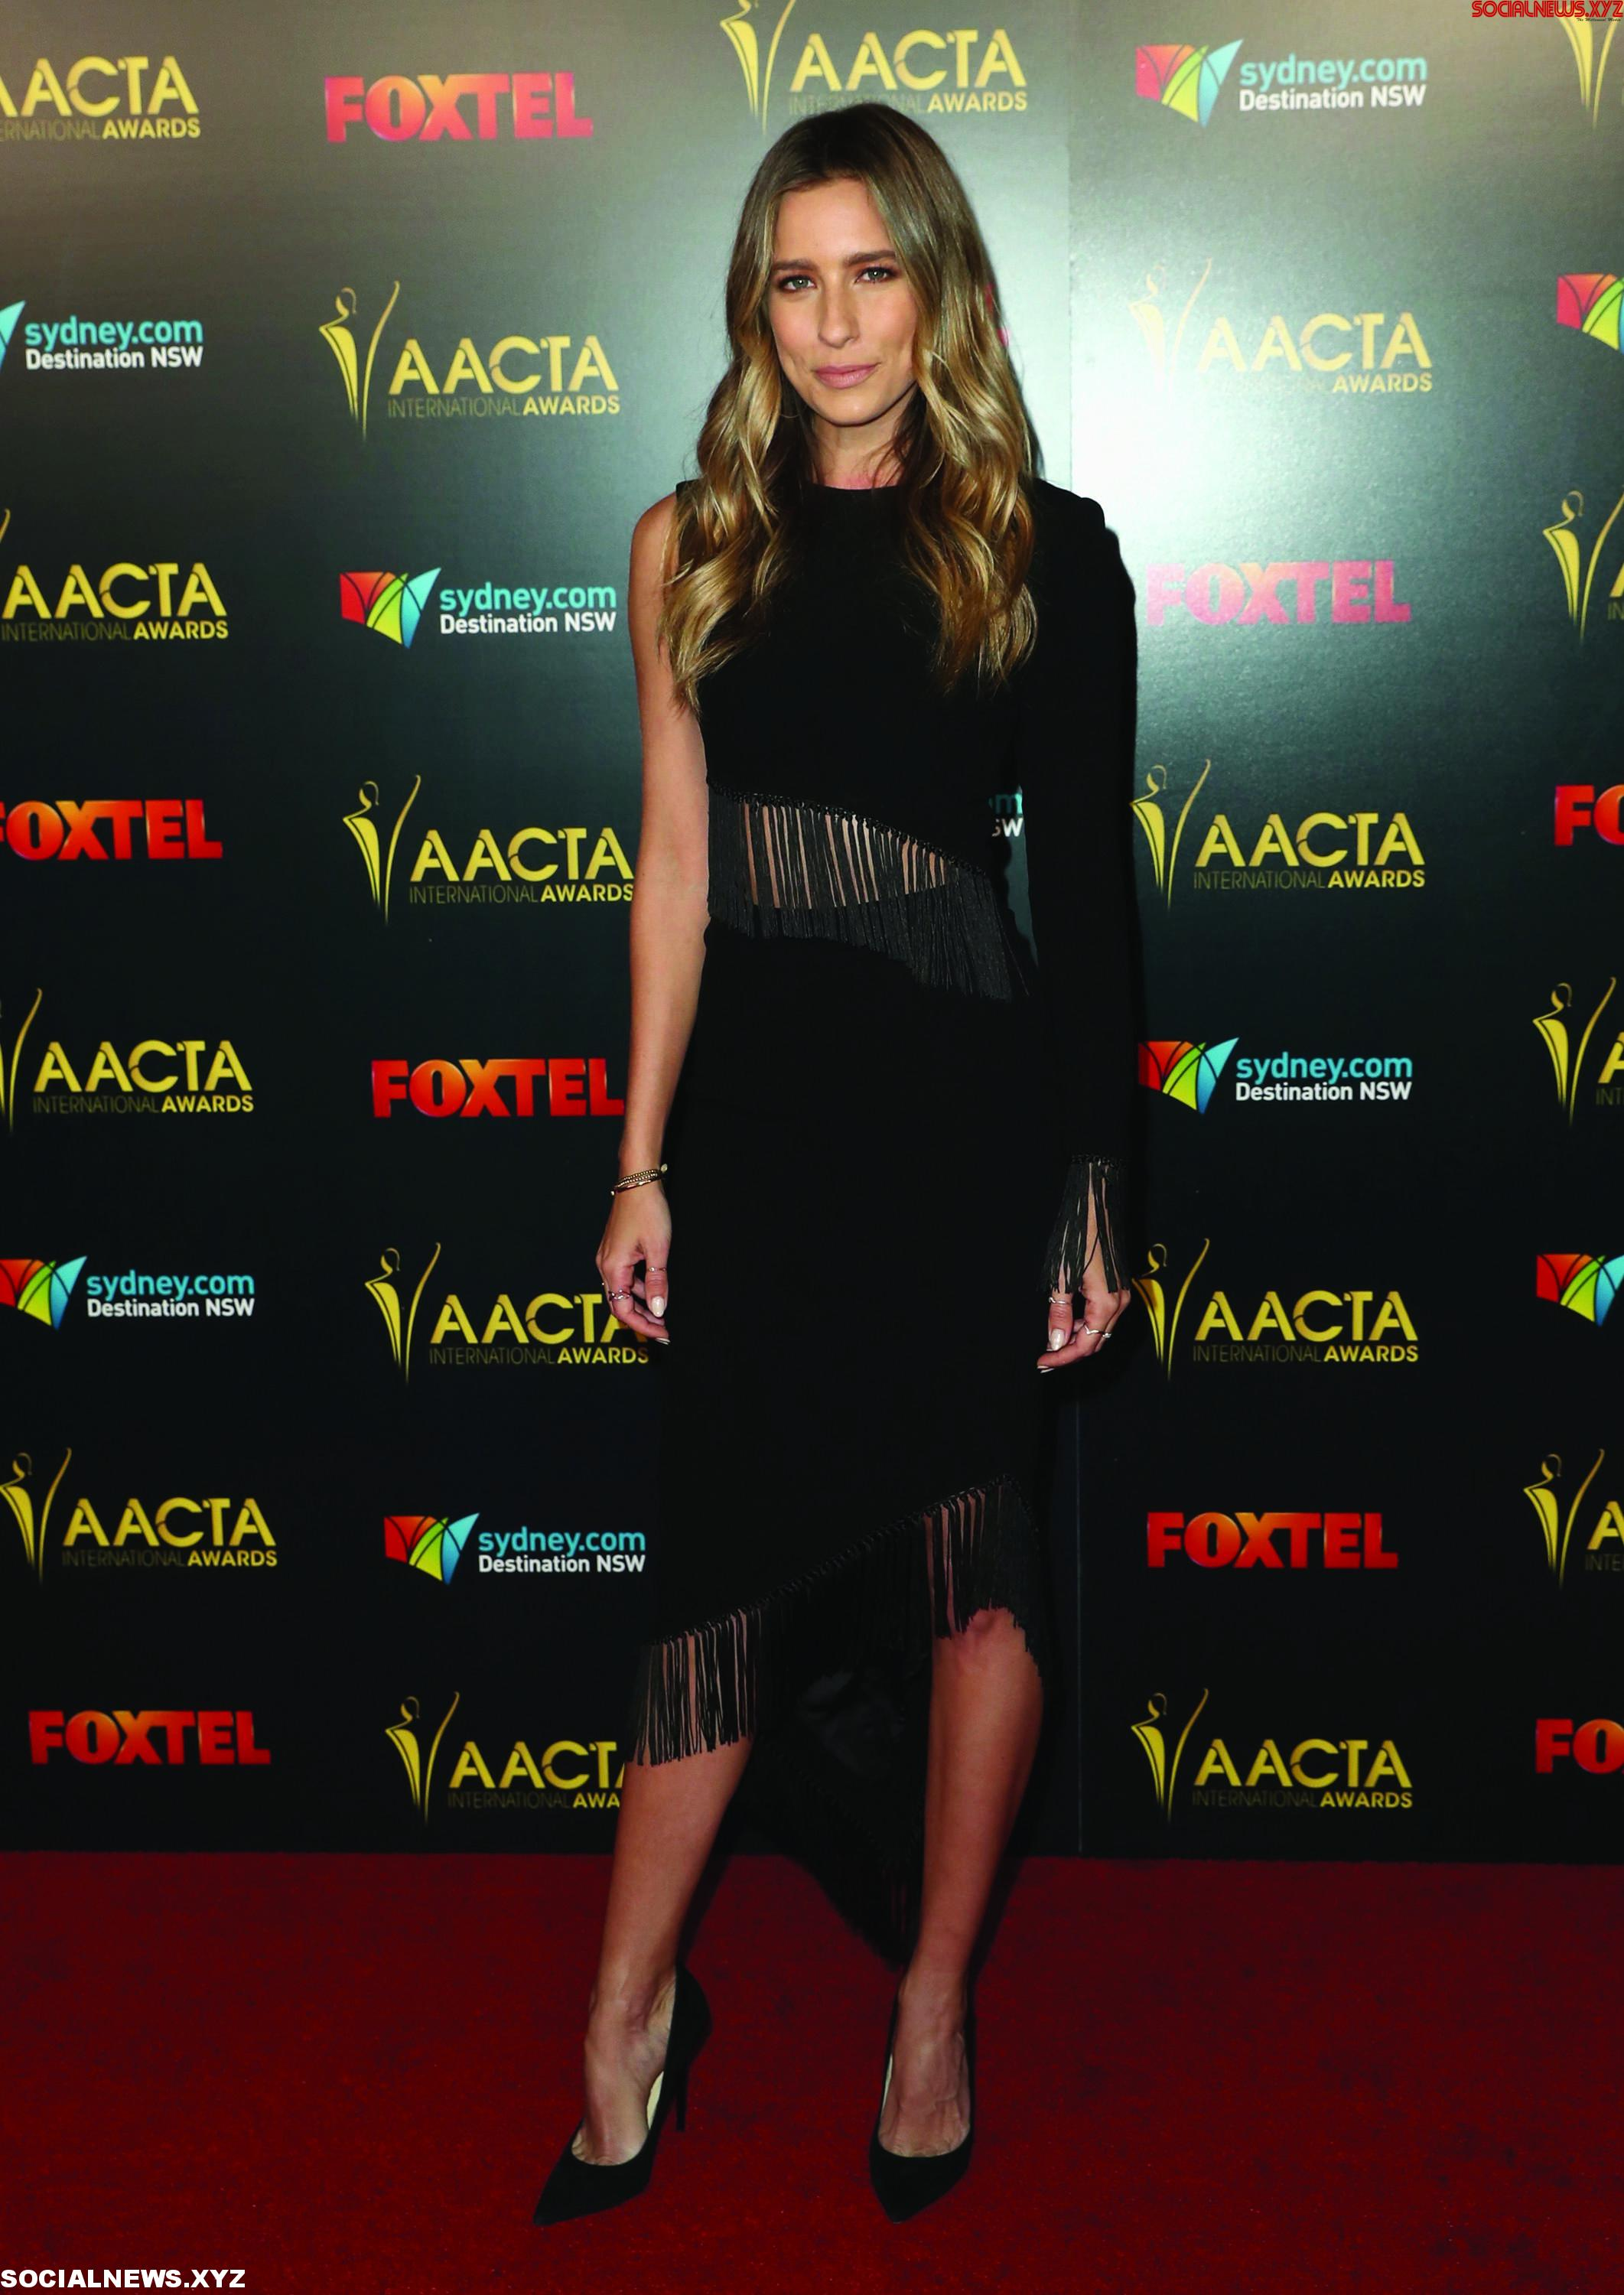 6th AACTA International Awards Red Carpet Arrivals Gallery Set 1